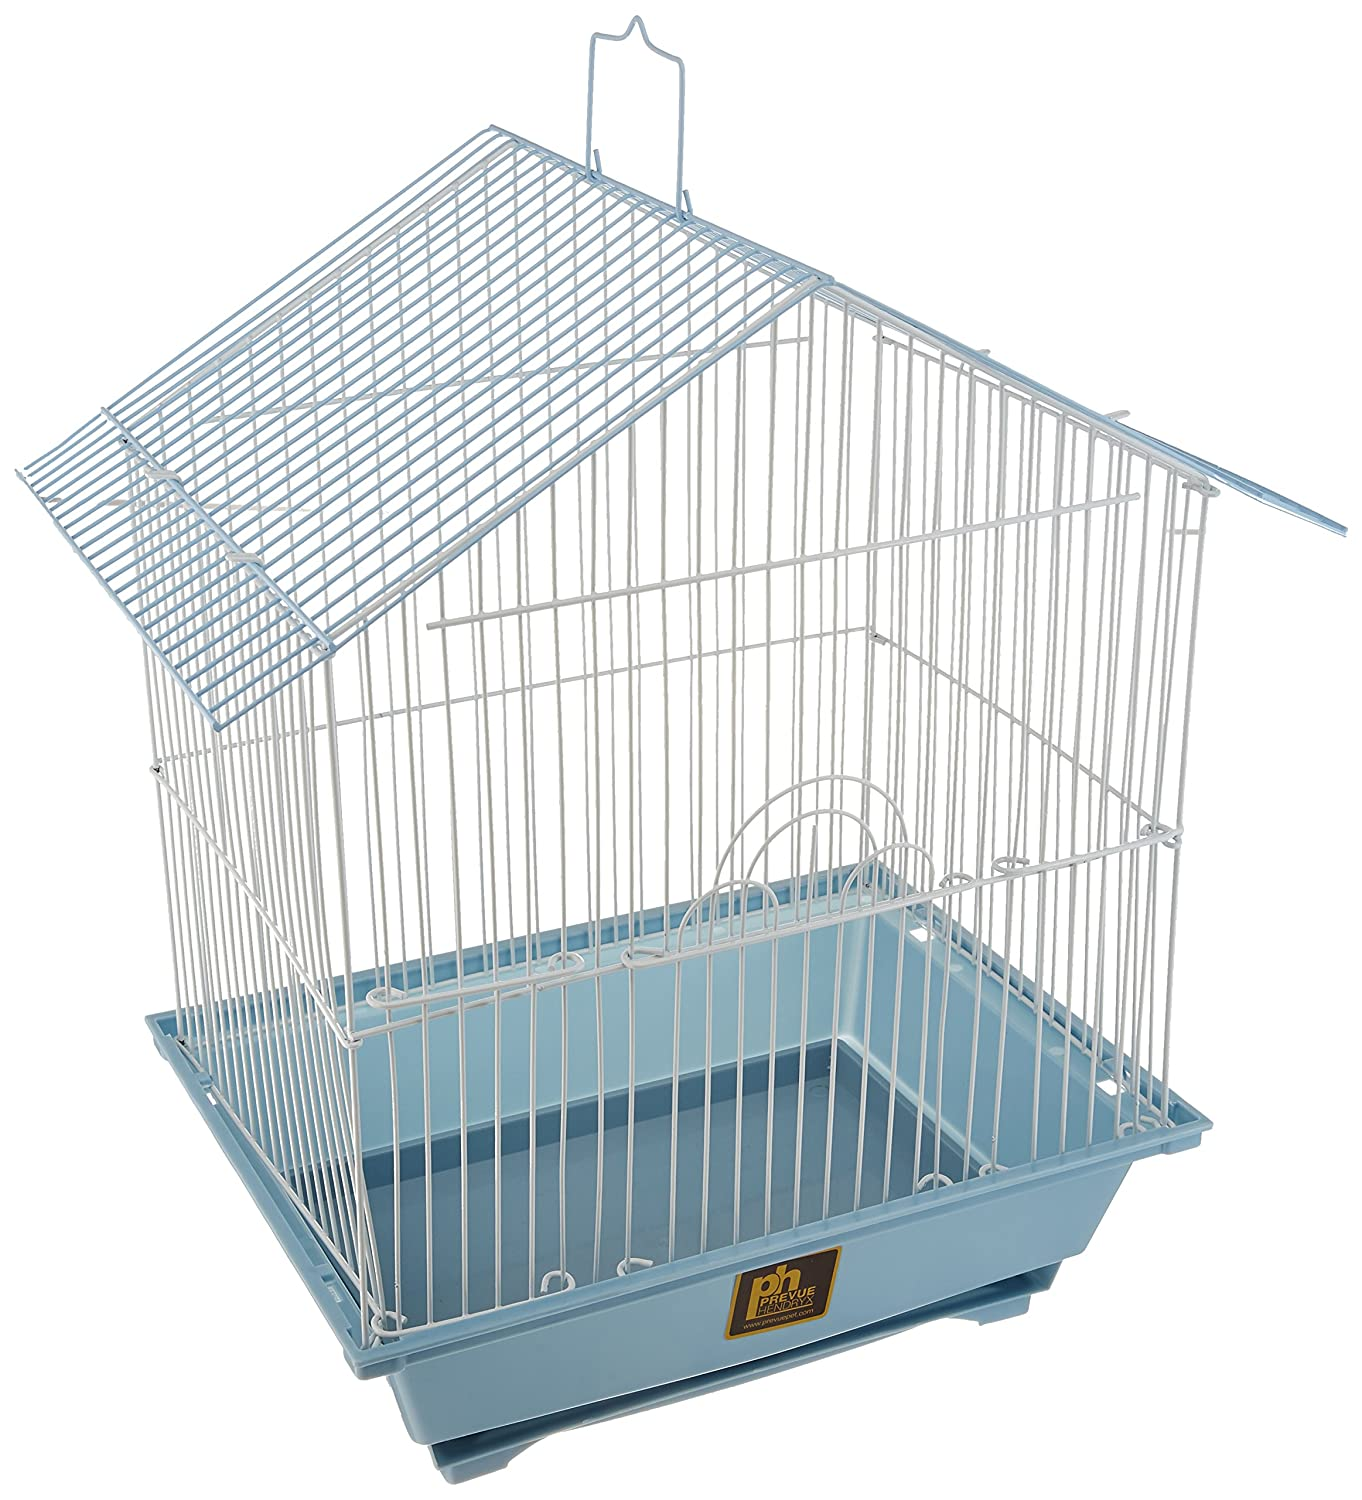 Prevue Hendryx House Style Economical Parakeet House with 2 Perches, 1 Swing and 2 Feeding Cups PP-31600